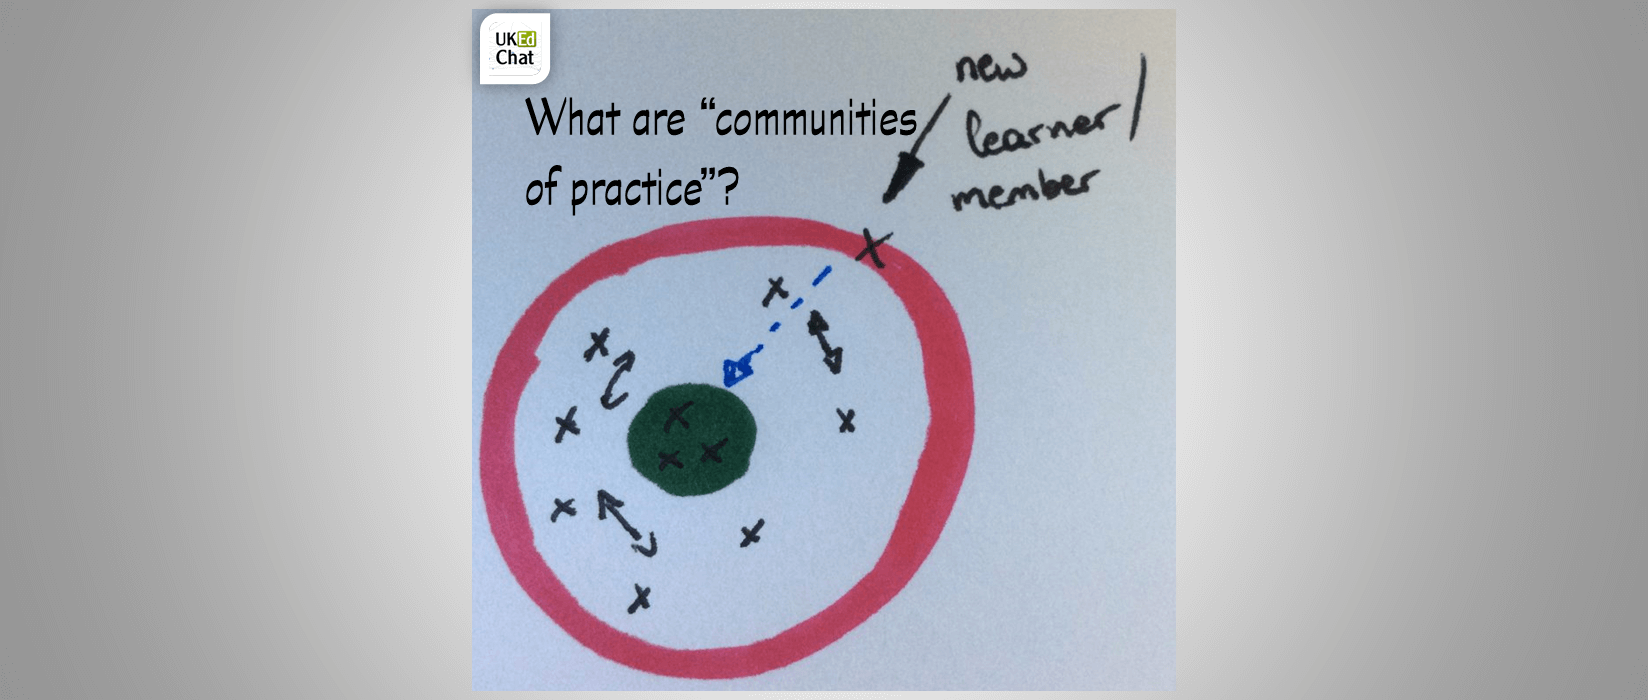 "What are ""communities of practice""? by @ncjbrown – UKEdChat"